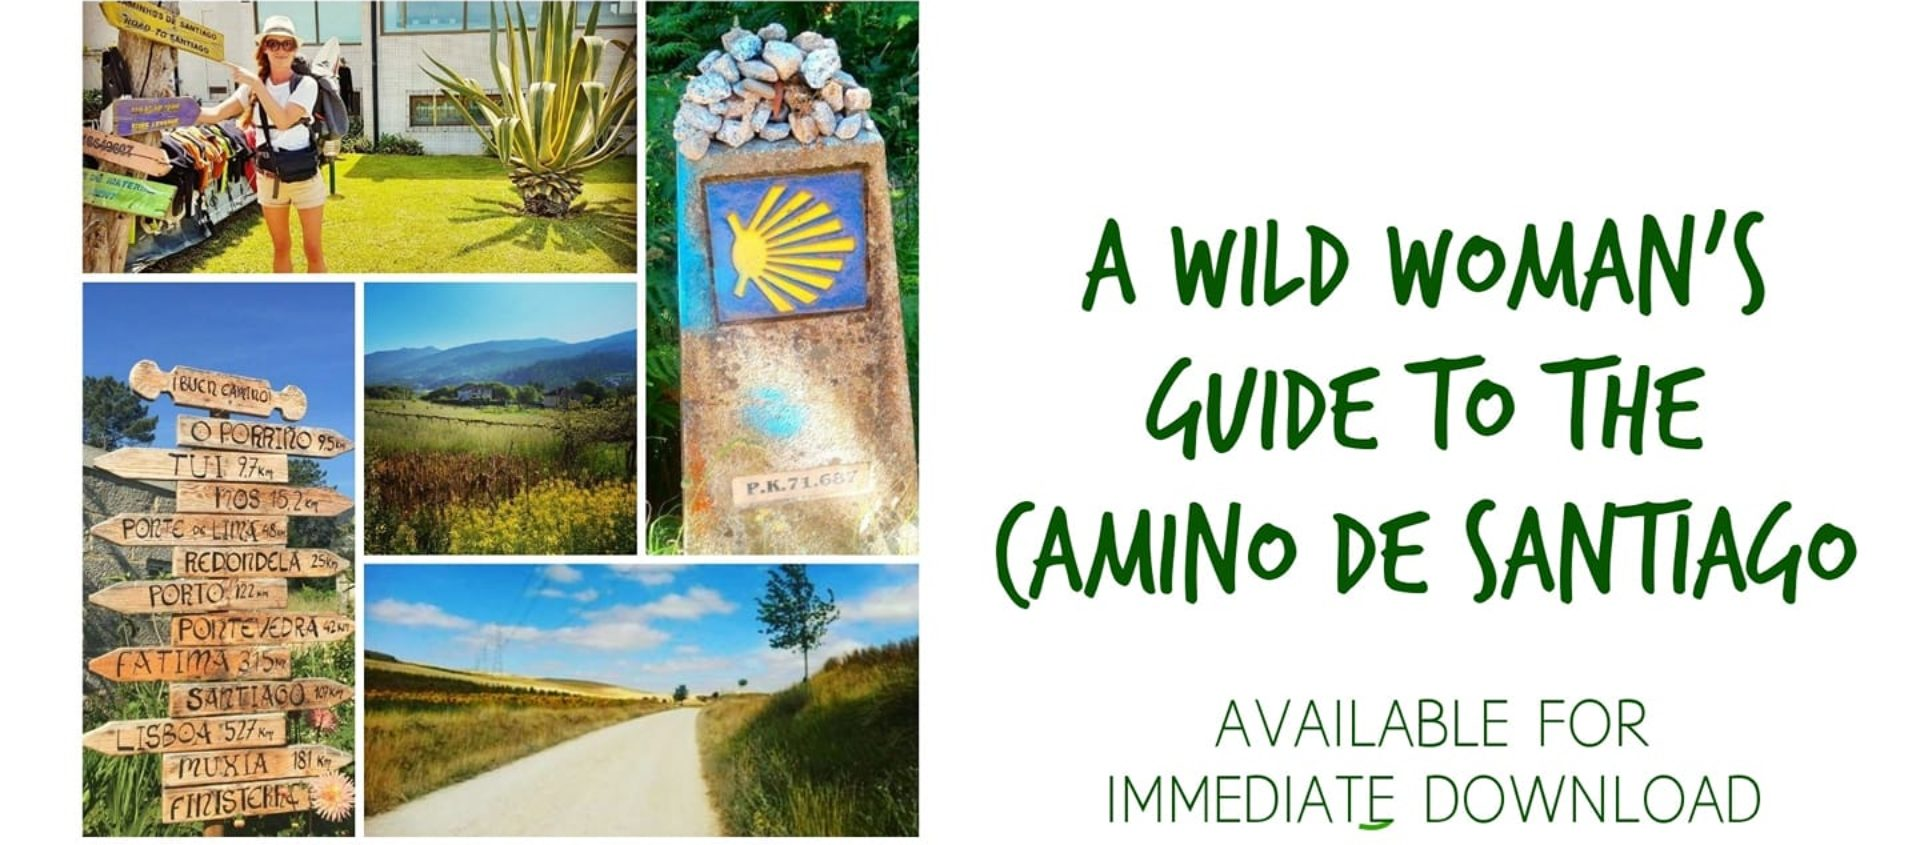 A Wild Woman's Guide To The Camino De Santiago Large Cover Image